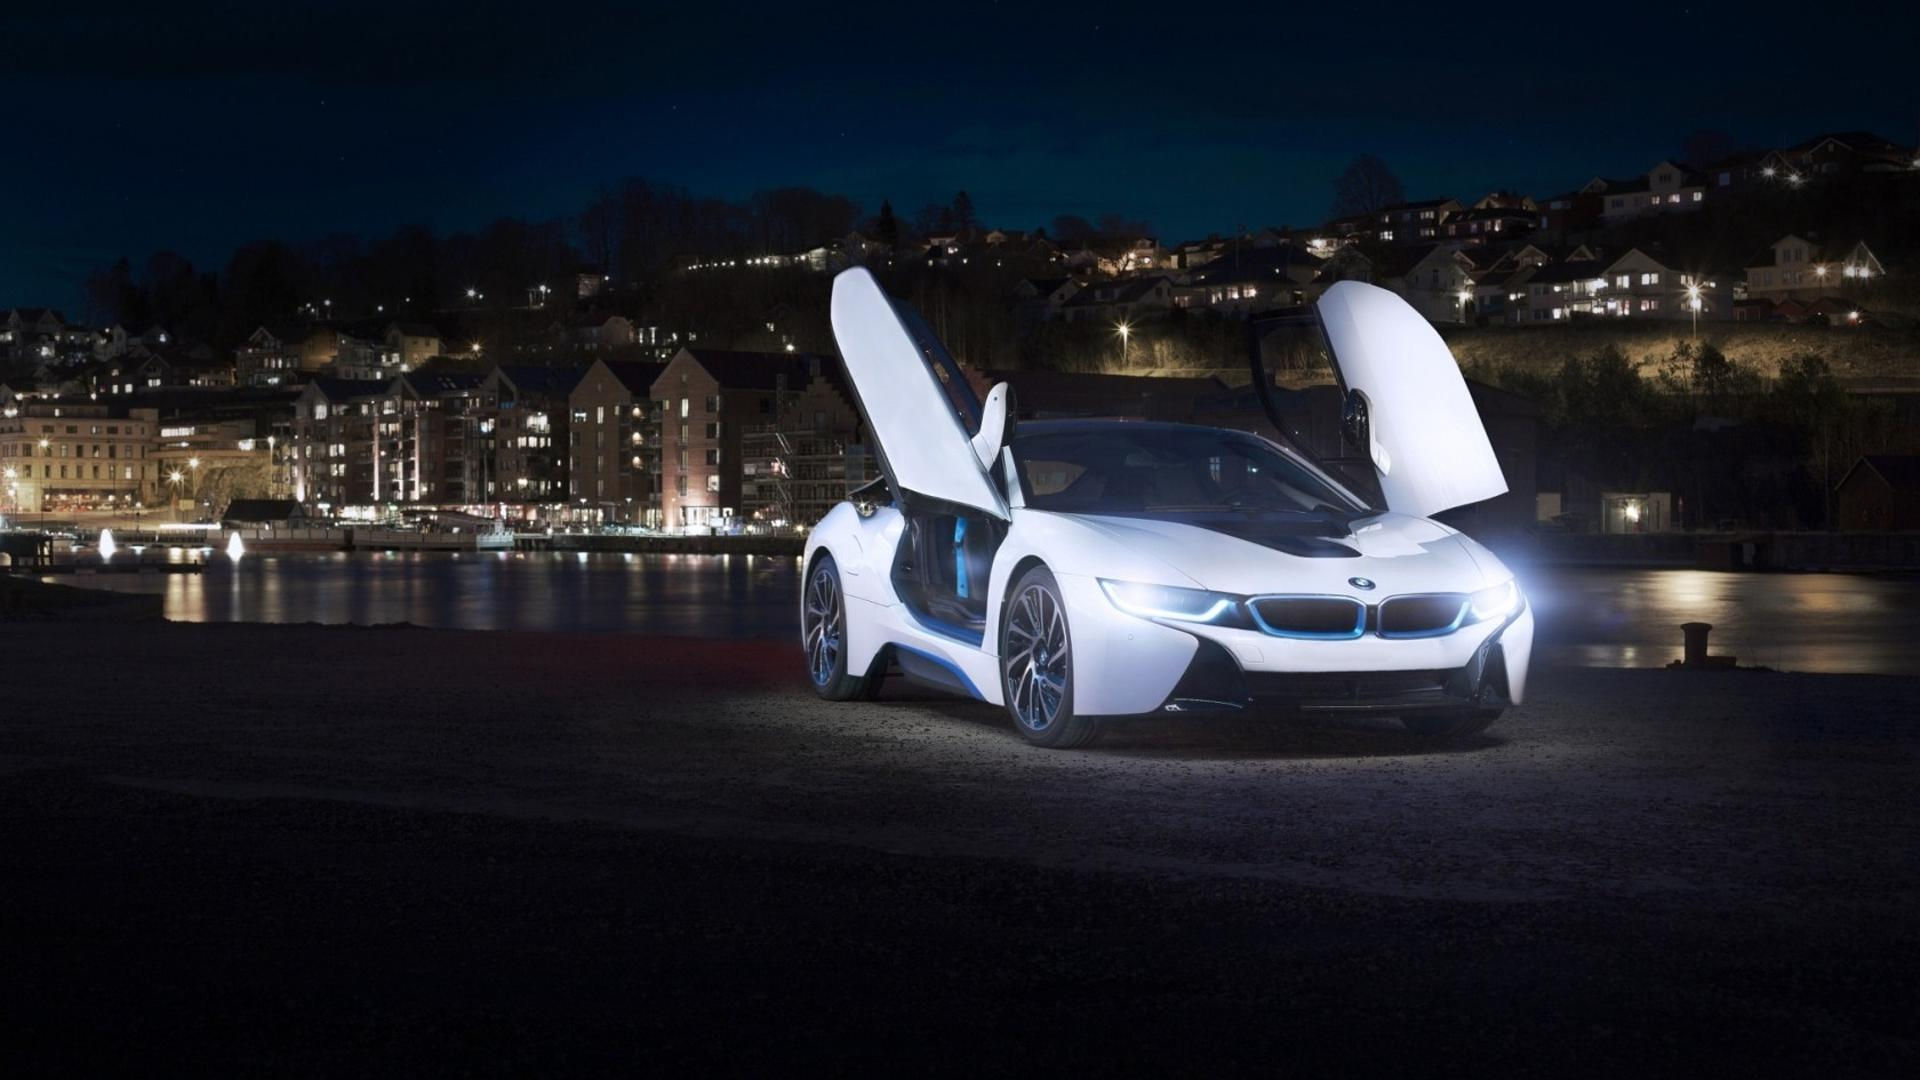 White BMW I8 Concept With Opened Doors In The City Wallpaper Download  1920x1080